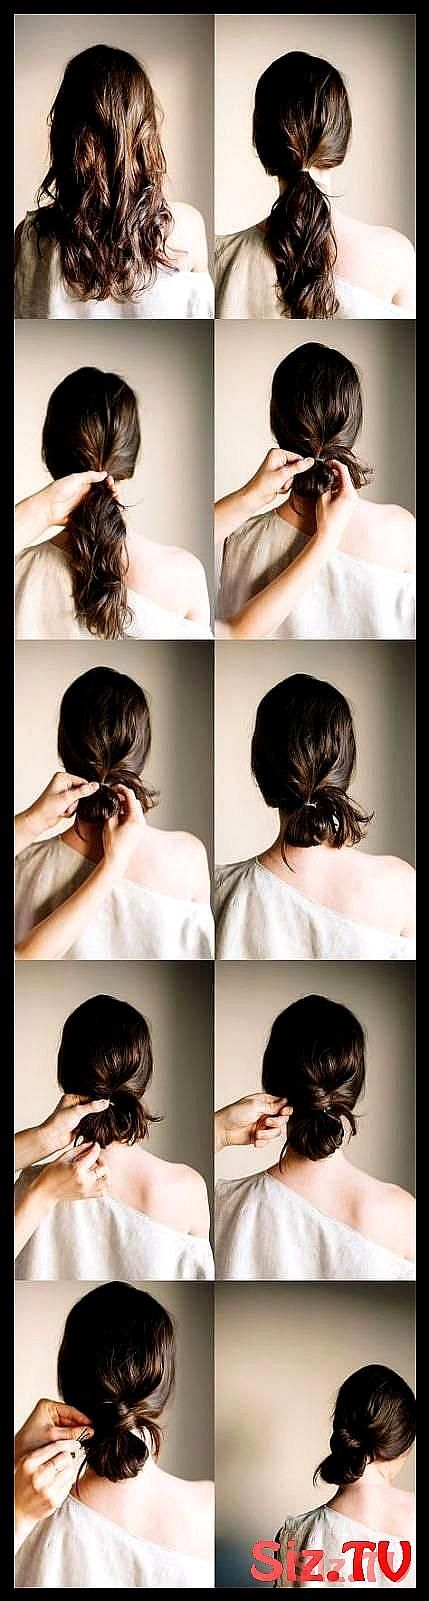 Wedding Hairstyles Simple Bun Top Knot 57 Ideas For 2019 Wedding Hairstyles Simple Bun Top Knot 57 Ideas For 2019 Wedding Hairstyles messybuntopknotuWedding Hairstyles Simple Bun Top Knot 57 Ideas For 2019 Wedding Hairstyles Simple Bun Top Knot 57 Ideas For 2019 Wedding Hairstyles messybuntopknotuMessy Bun Save Images Messy Bun Wedding Hairstyles Simple Bun Top Knot 57 Ideas For 2019 Wedding Hairstyles Simple Bun Top Kn #hairstyles #ideas #messybuntopknotsimple #messybuntopknotu #simple #wedding #topknotbunhowto